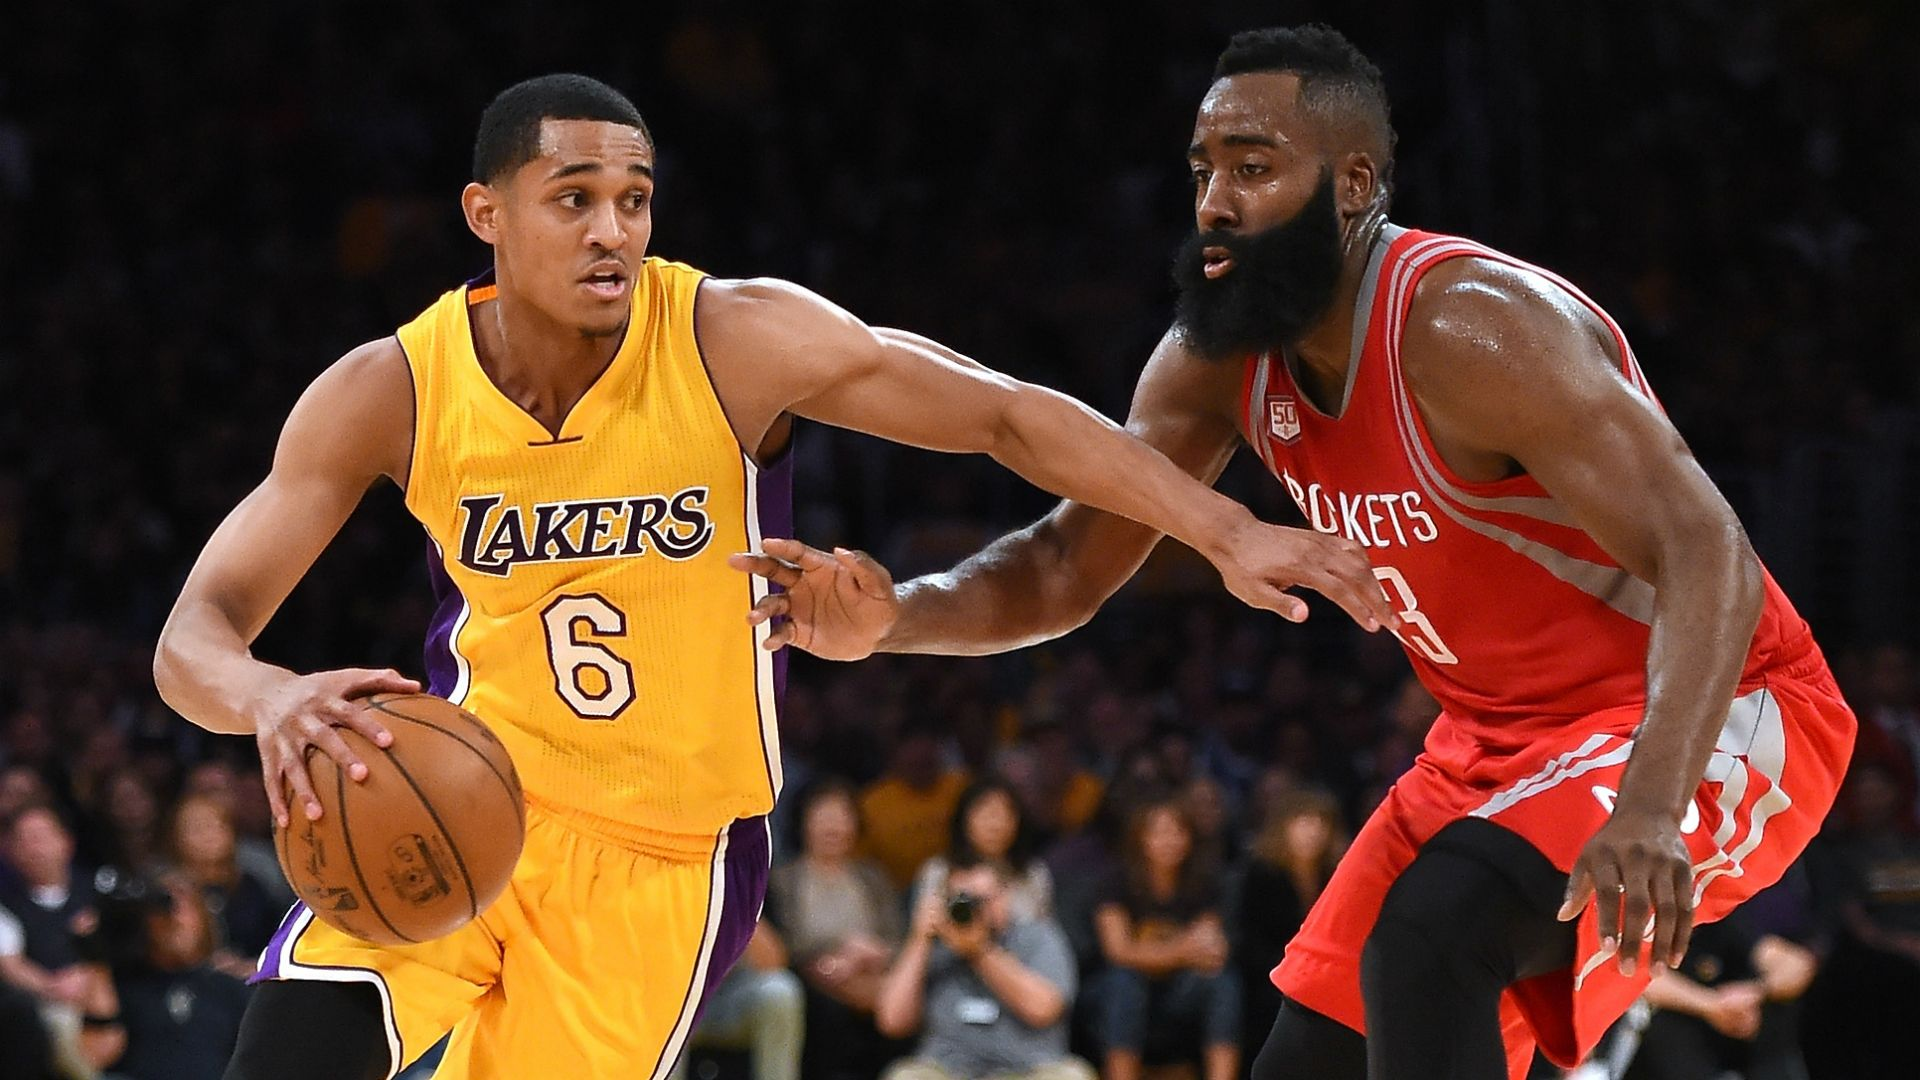 Watch Online Los Angeles Lakers Vs Houston Rockets Live Streaming For Free The Best Place To Find A Live Stream To Watch The Match Betwe